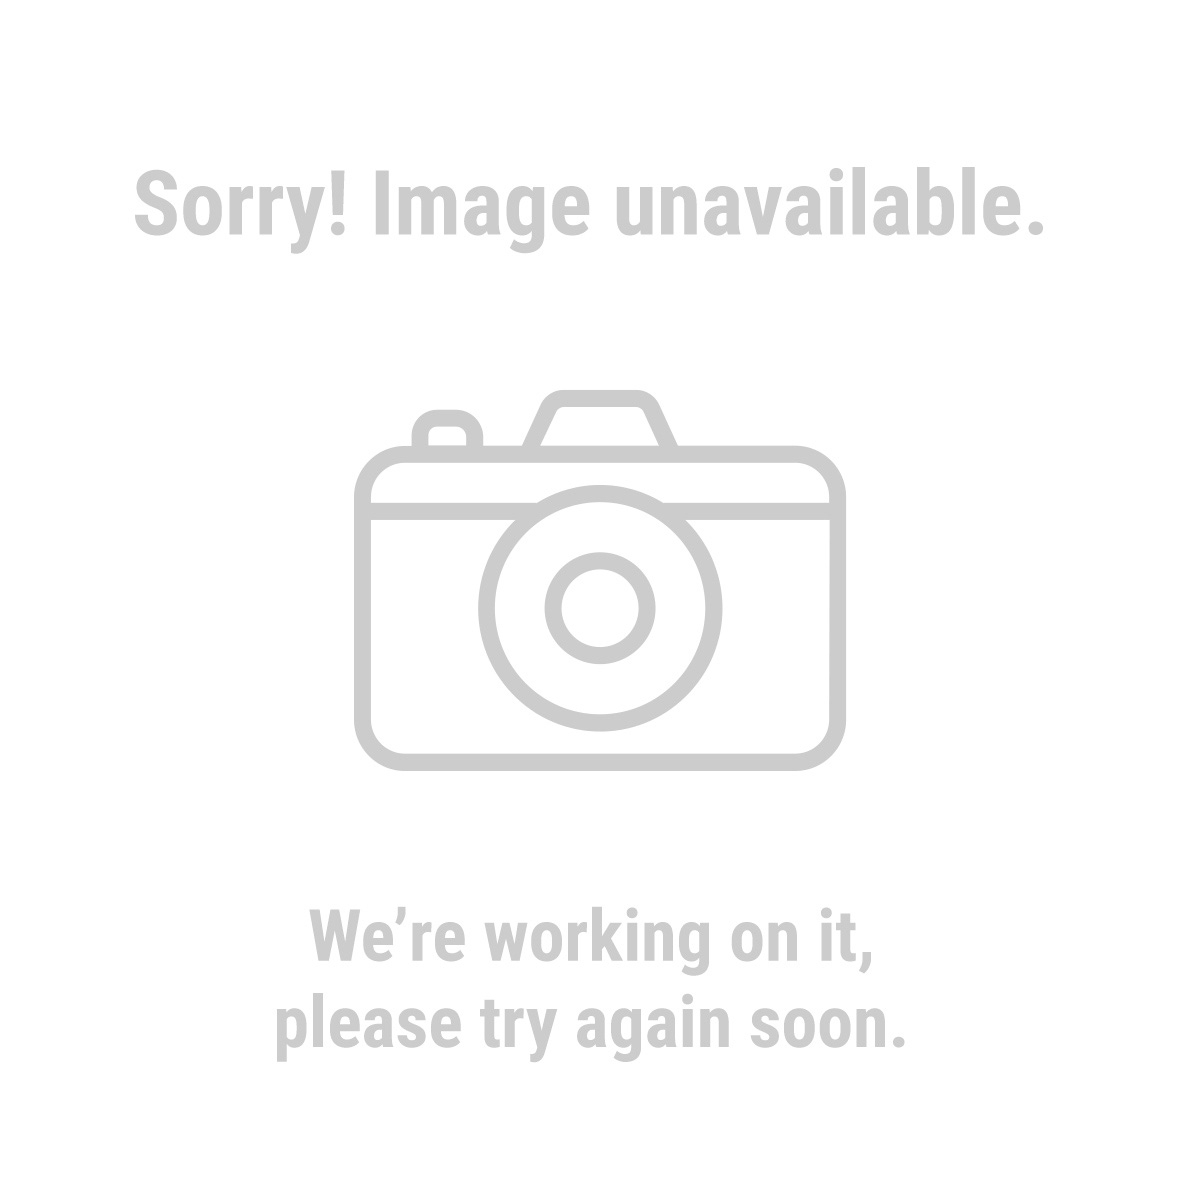 10 ton floor jack harbor freight carpet review